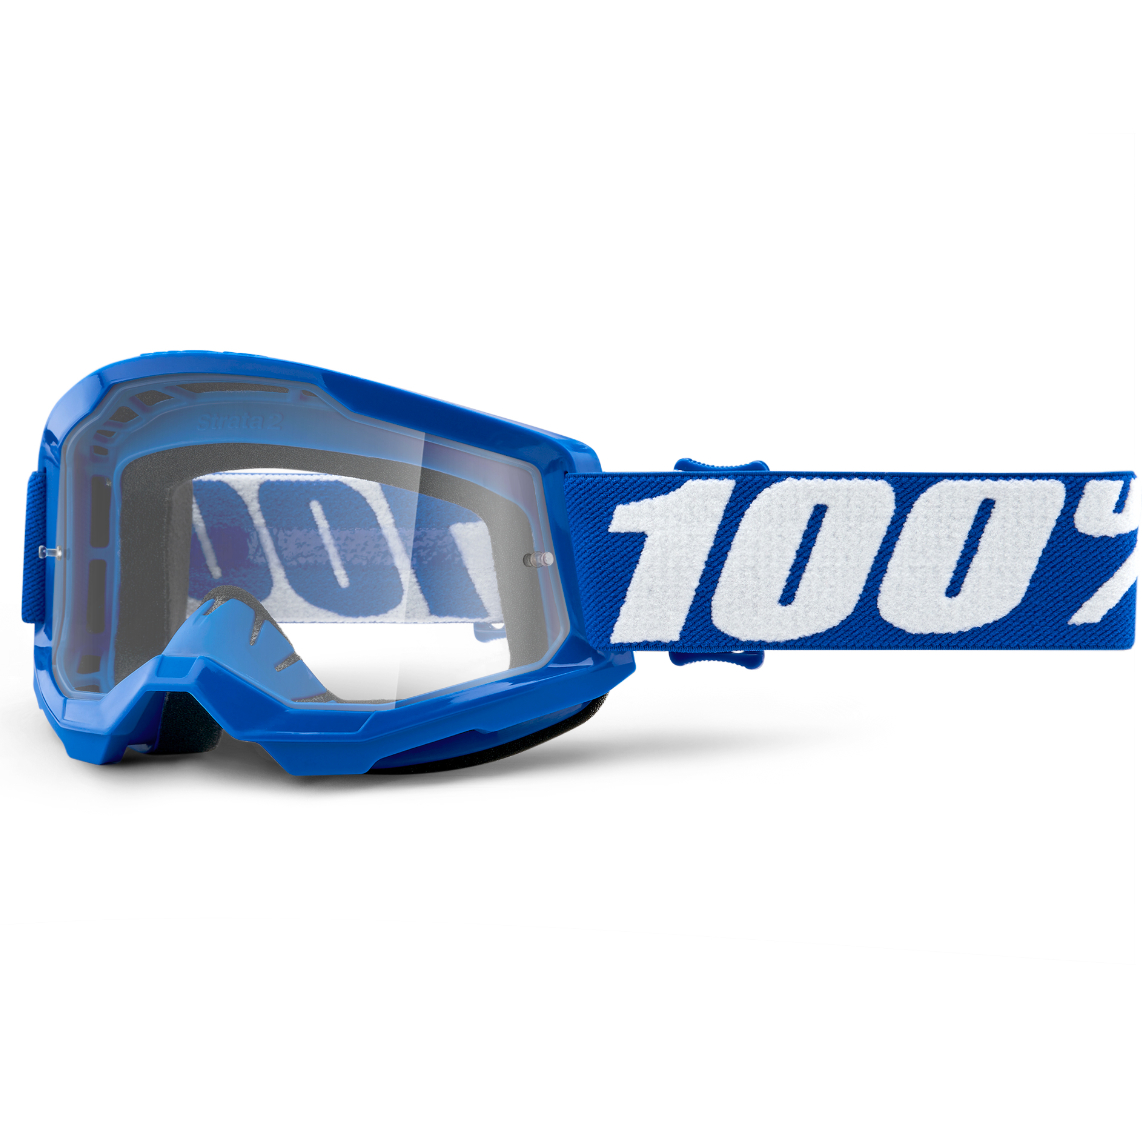 2021 100% strata 2 youth goggle blue - clear lens - 50521 101 02